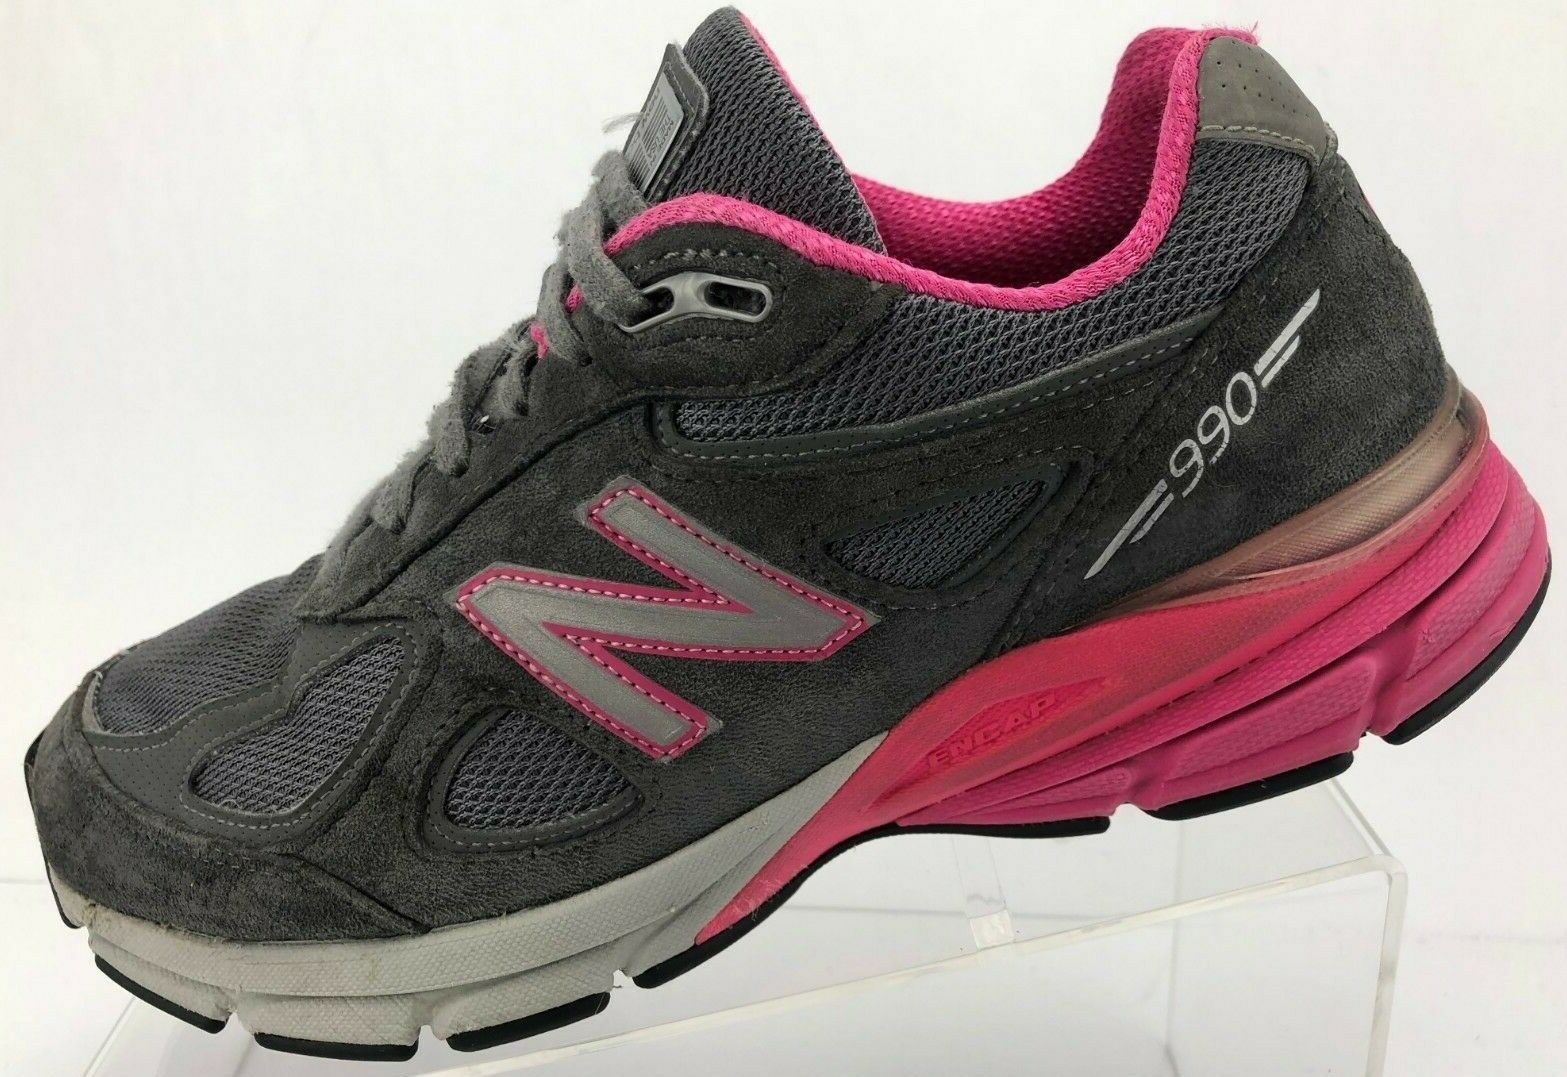 New Balance 990v4 Running shoes Grey Training Athletic Sneakers USA Womens 8 D